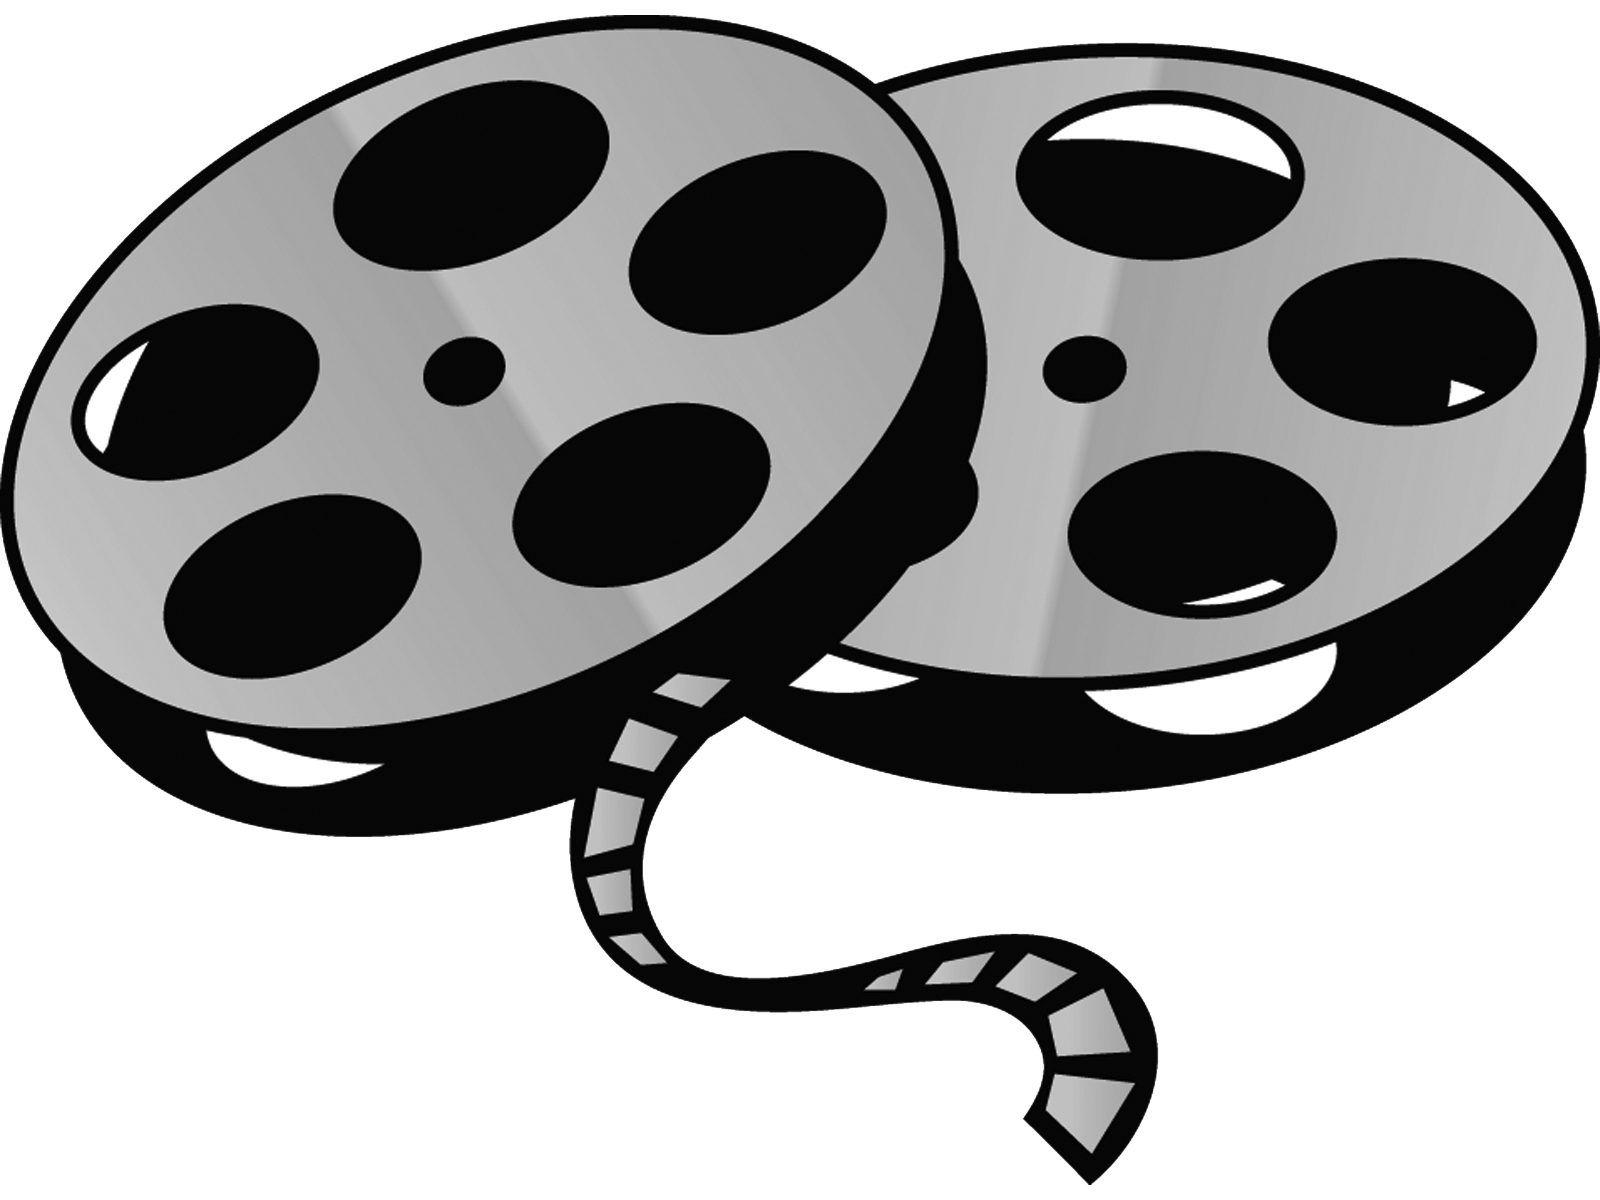 Film clipart animated movie. Cartoon physic minimalistics co